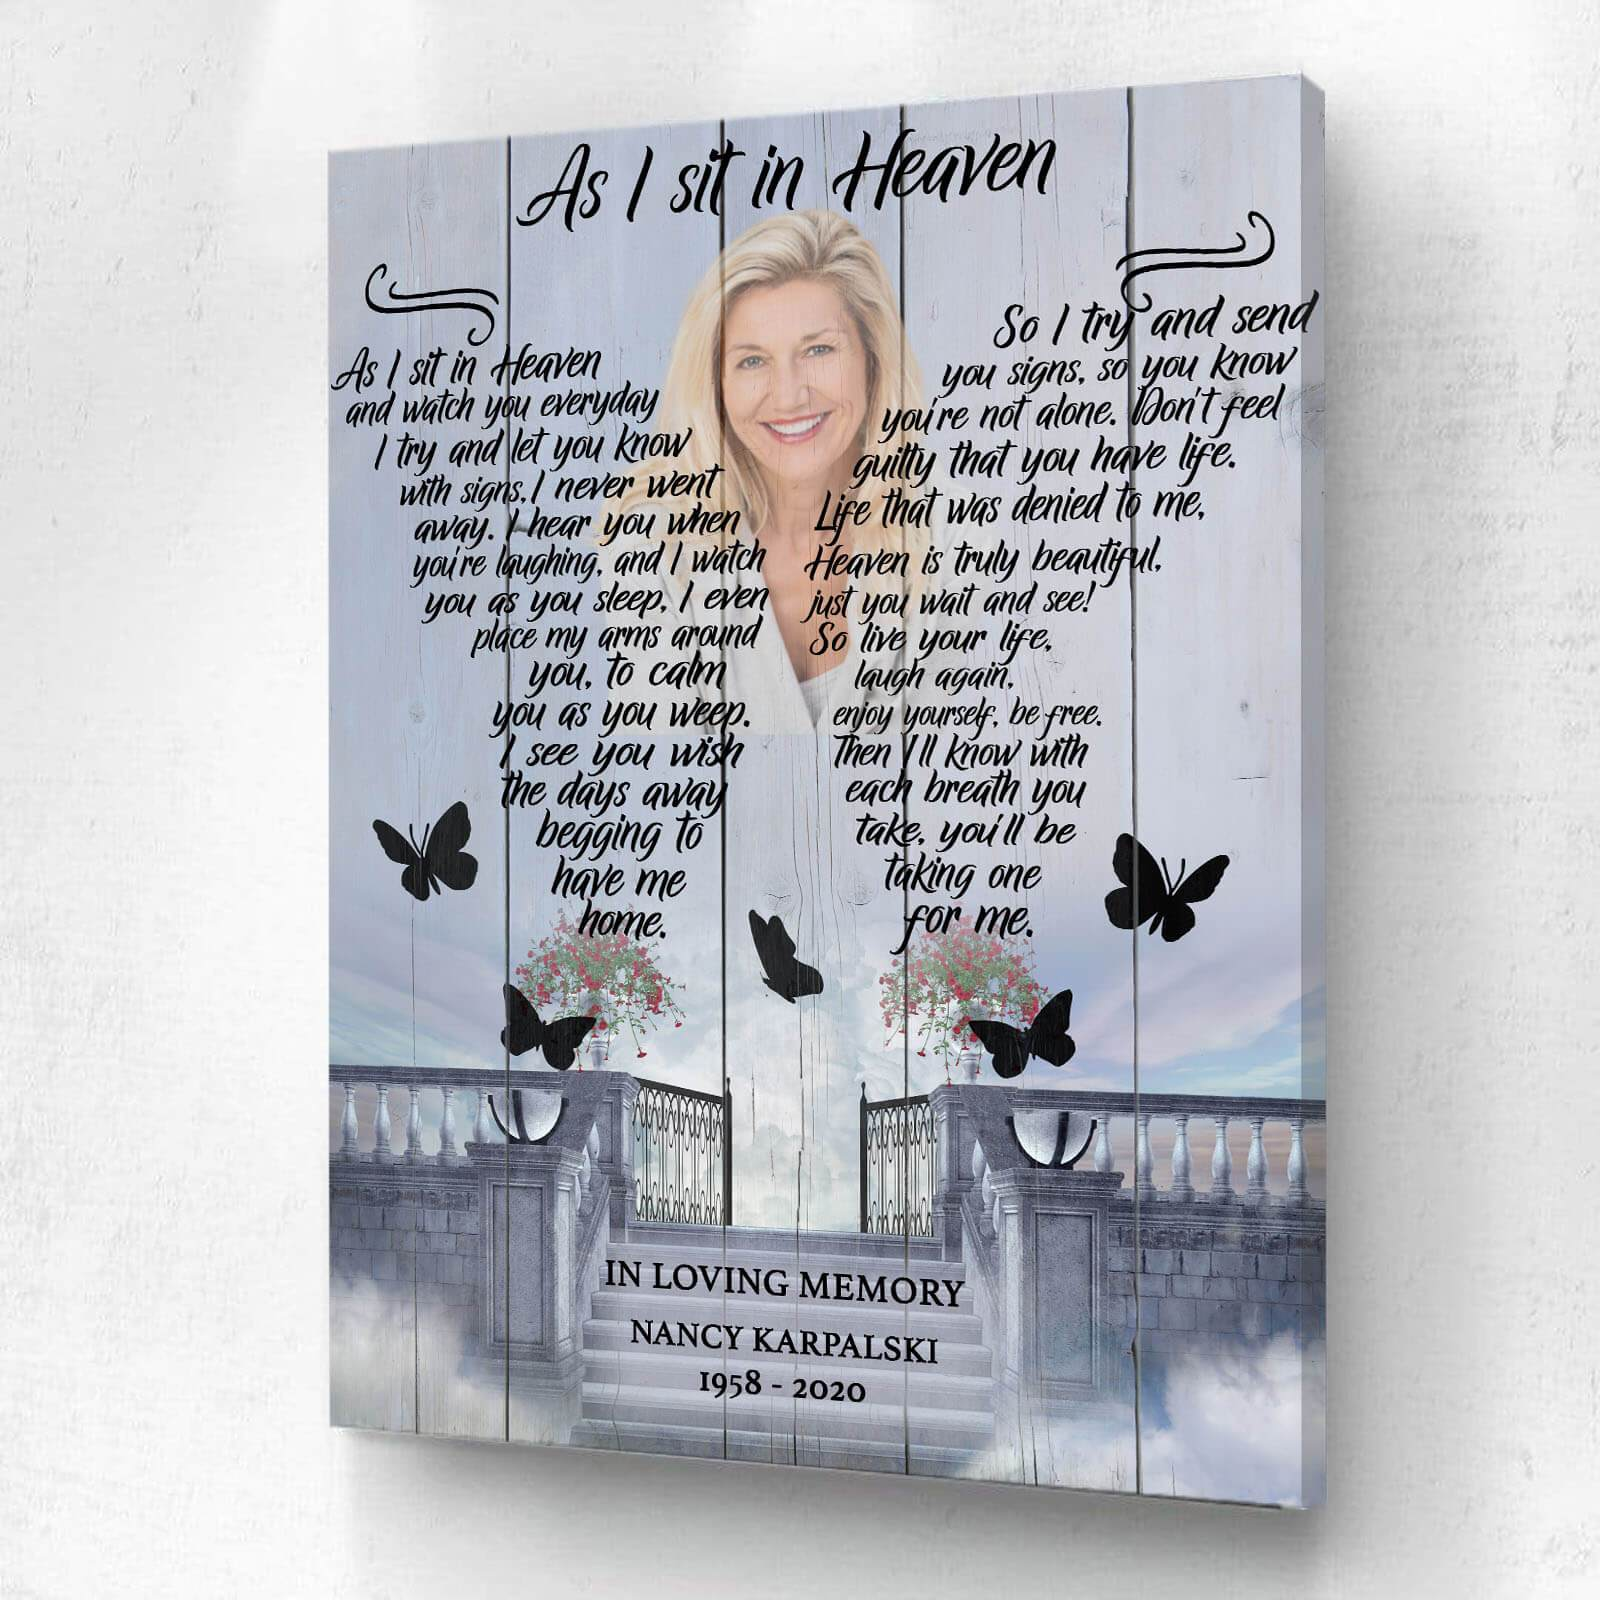 As I Sit In Heaven Stairway to Heaven Background - Personalized Canvas